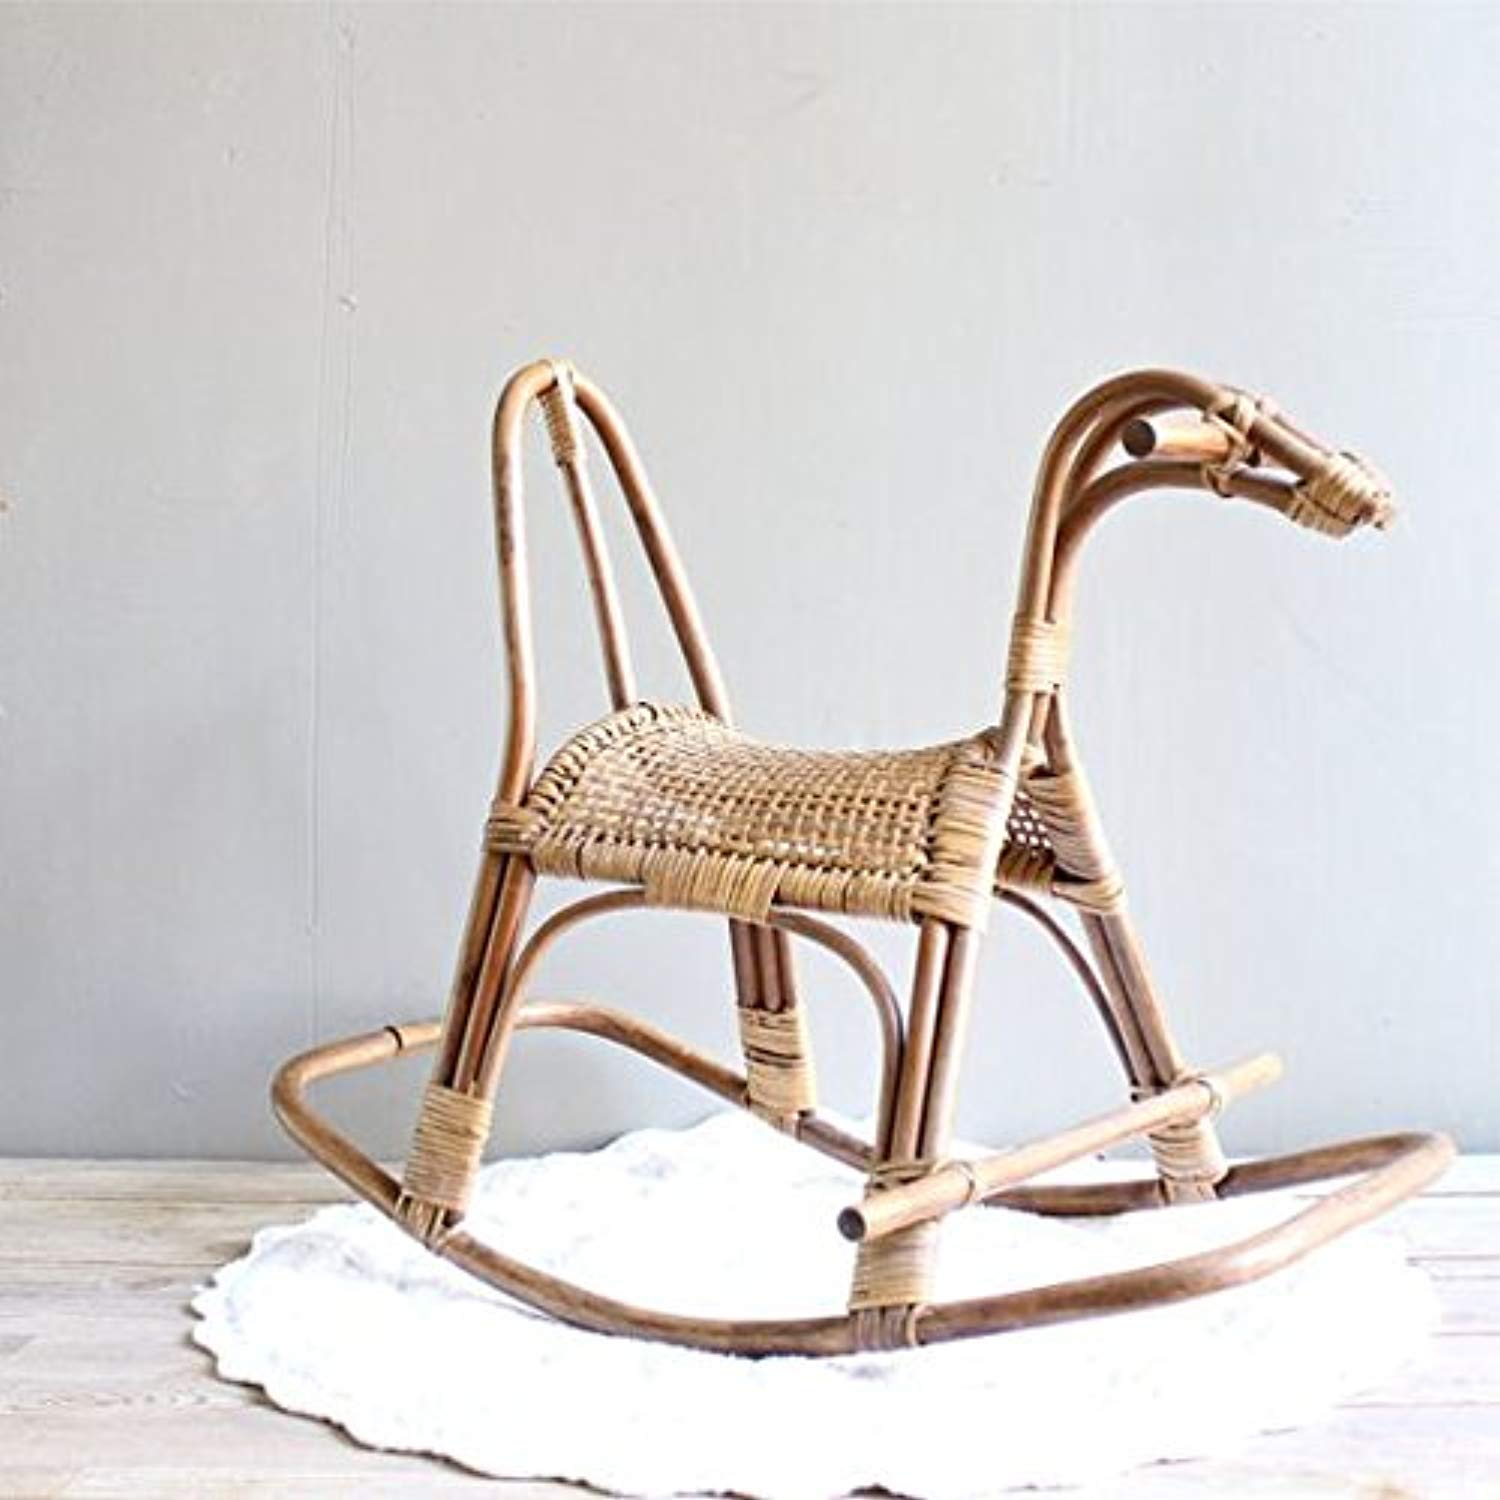 IRA Toddler's Cane Art Rattan Rocking Horse Chair - IRA Furniture